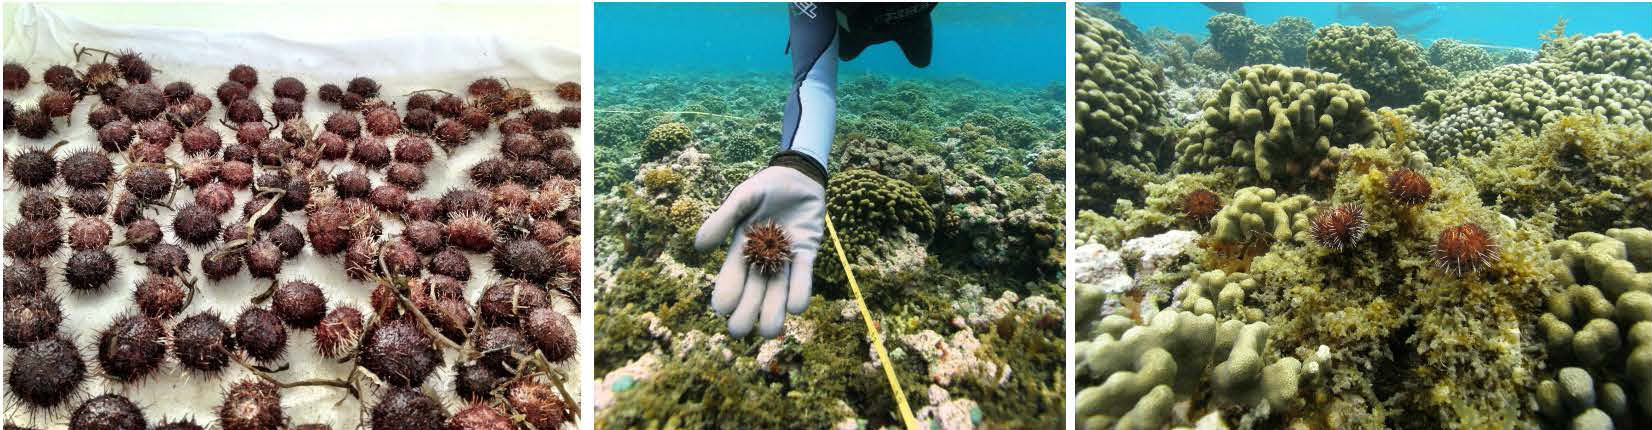 Urchin release sequence